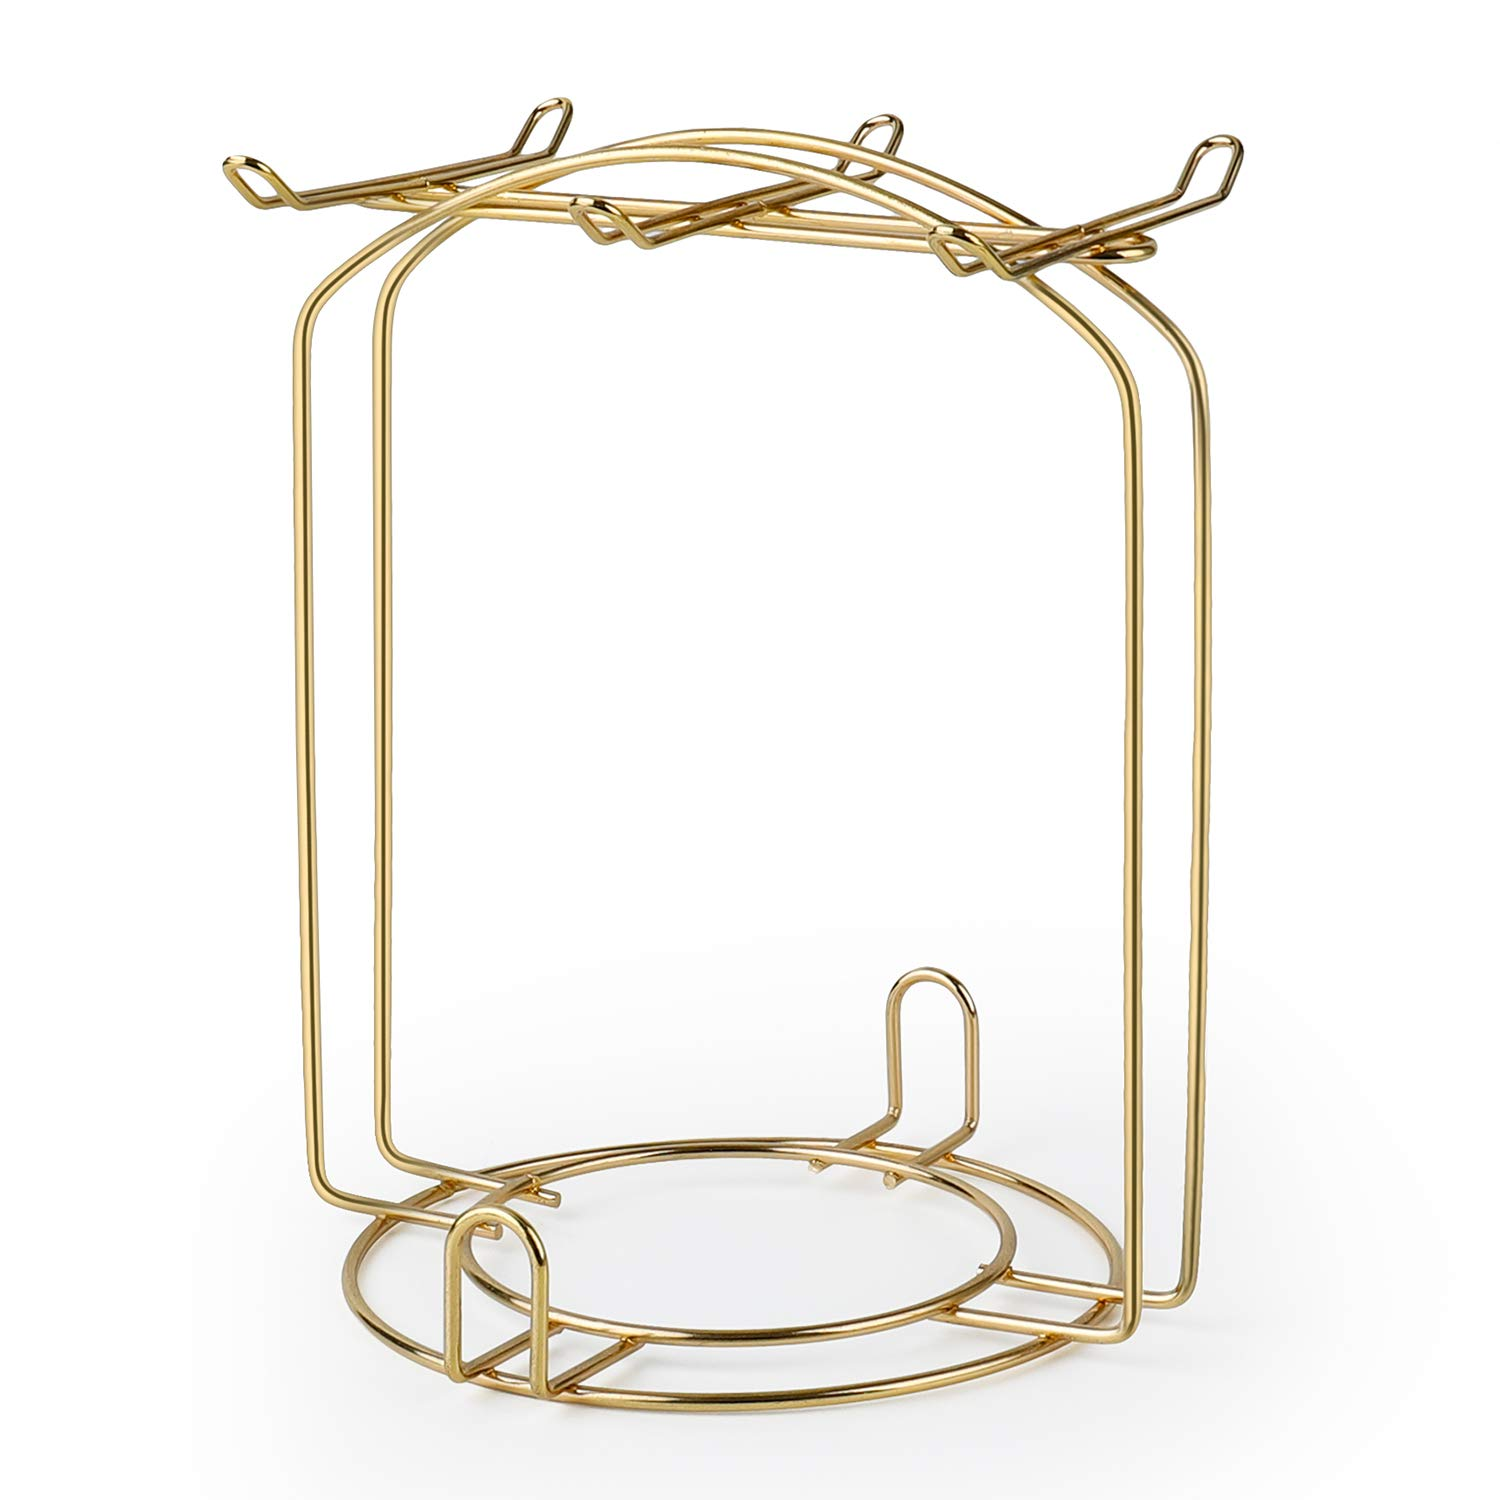 Amazingware Stainless Steel Wire Rack Display Stand Service for Tea Cups,Bracket